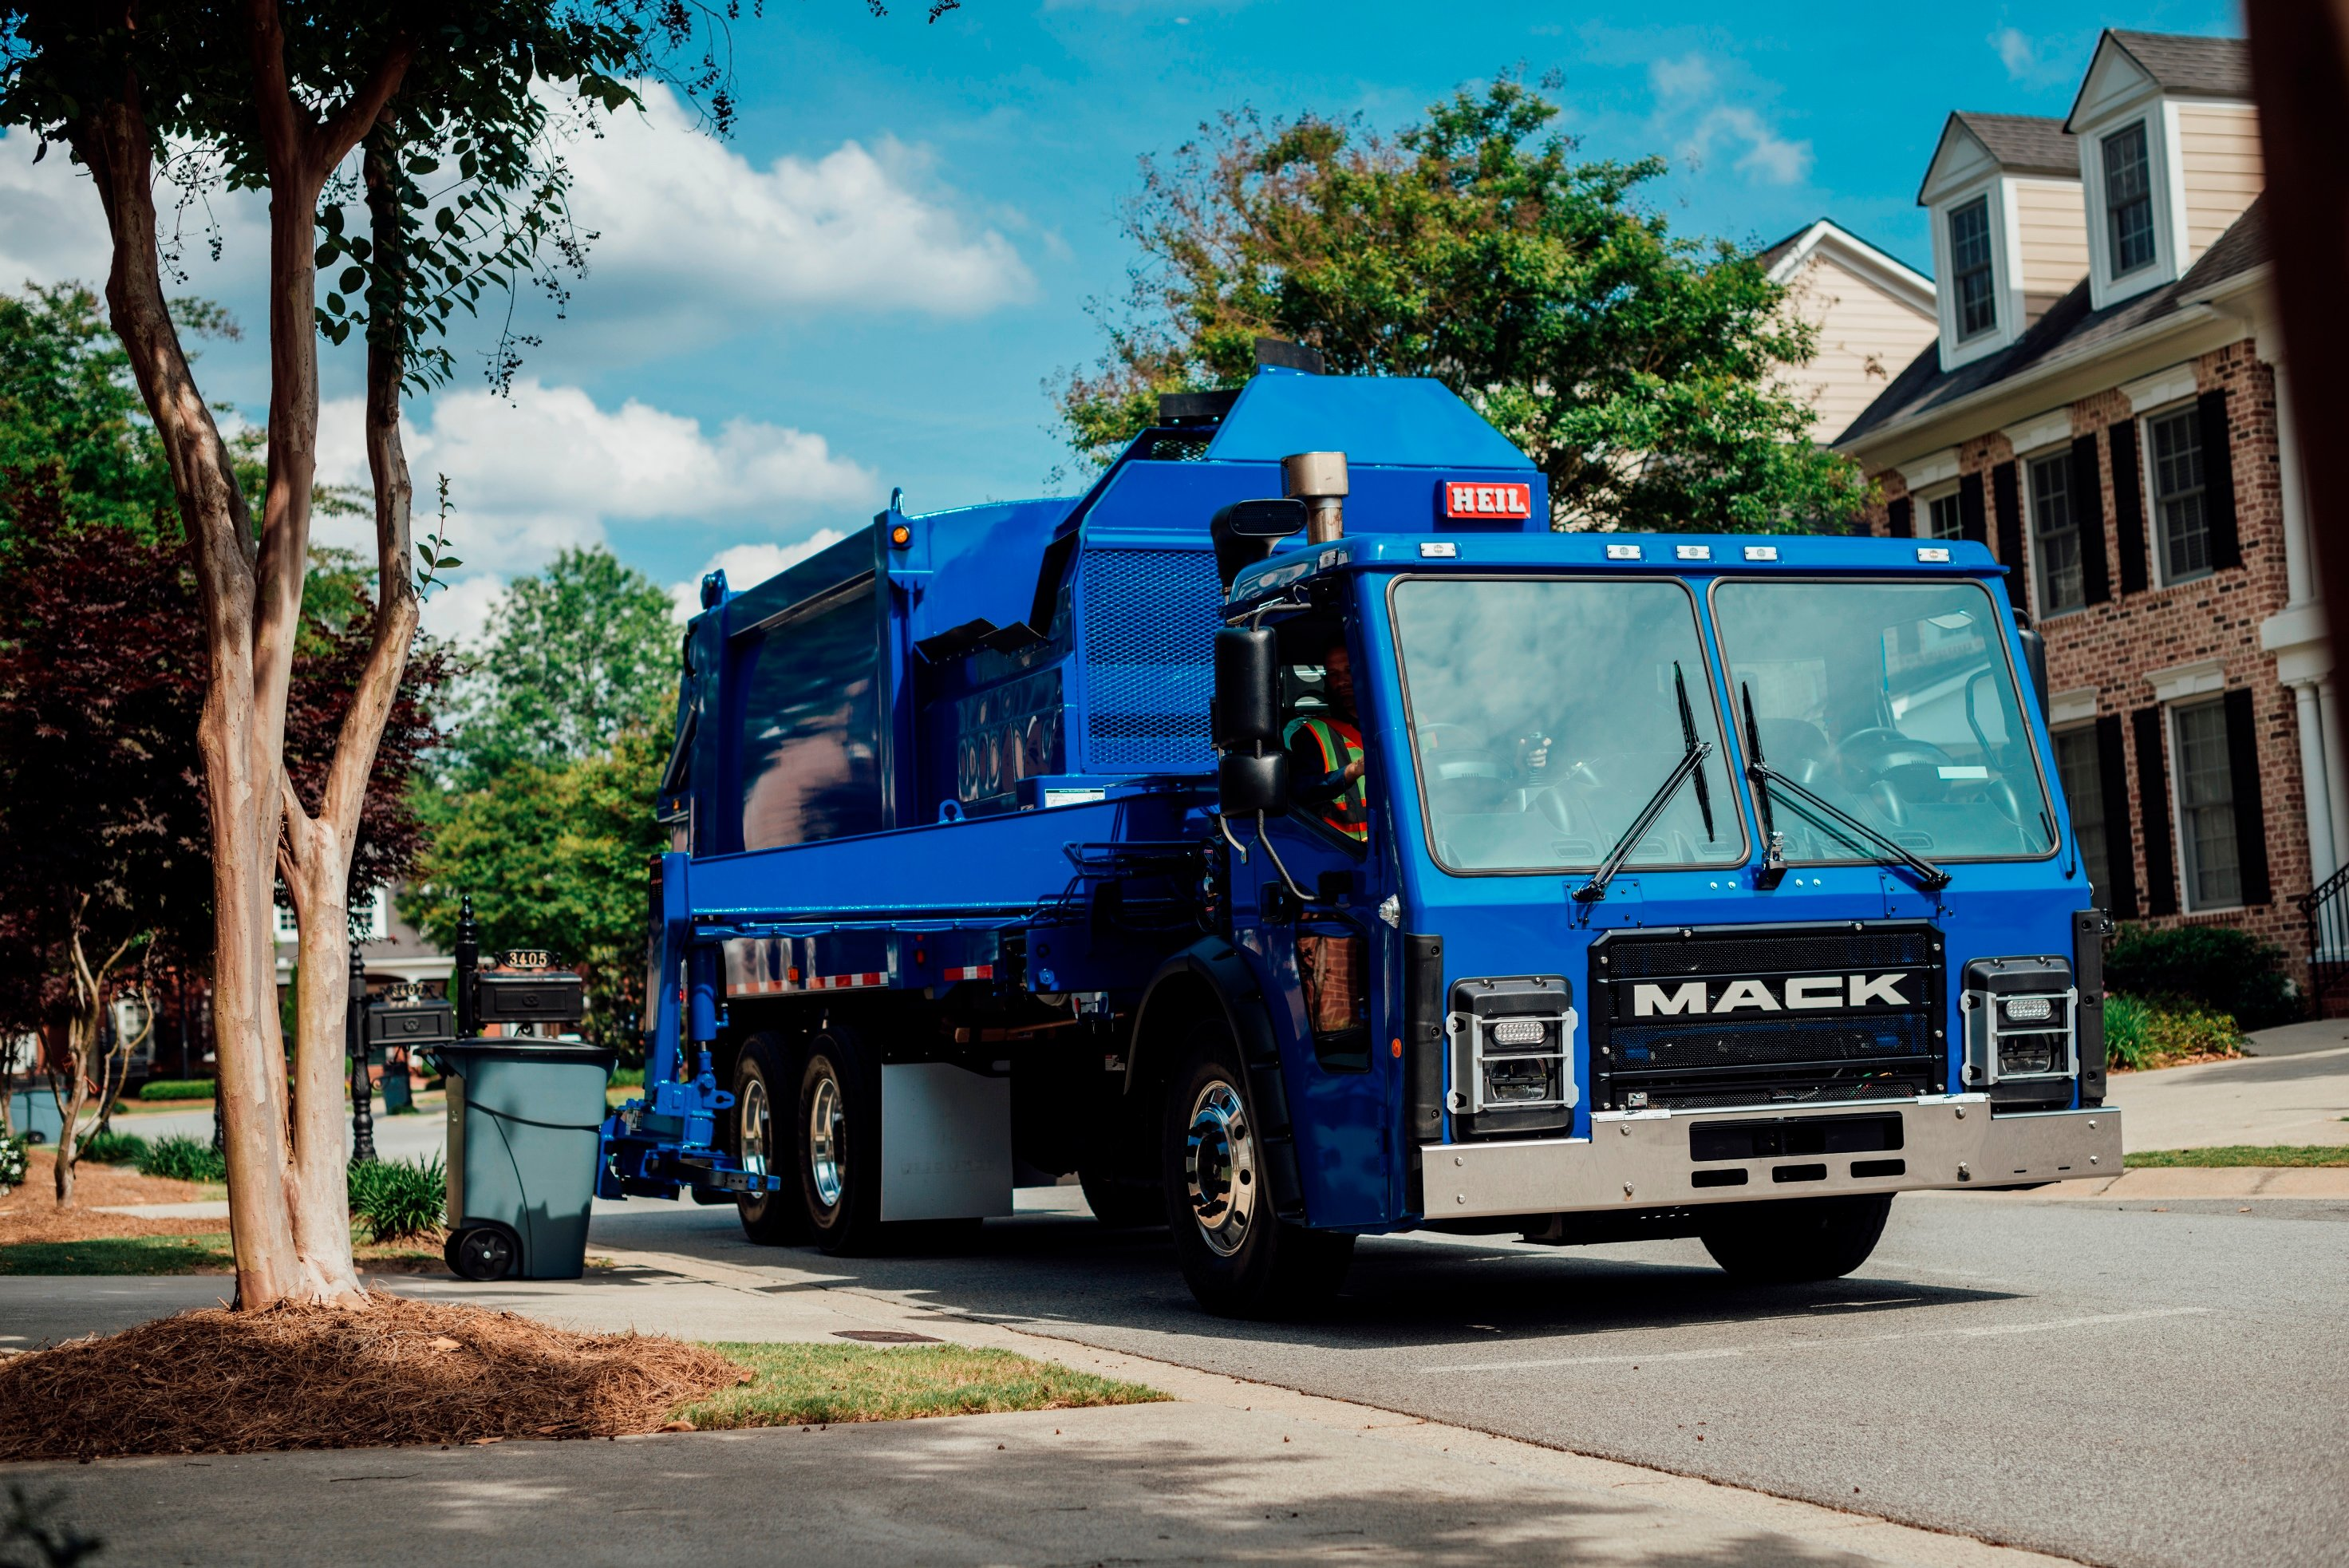 Mack's LR Refuse Truck Caters to Drivers